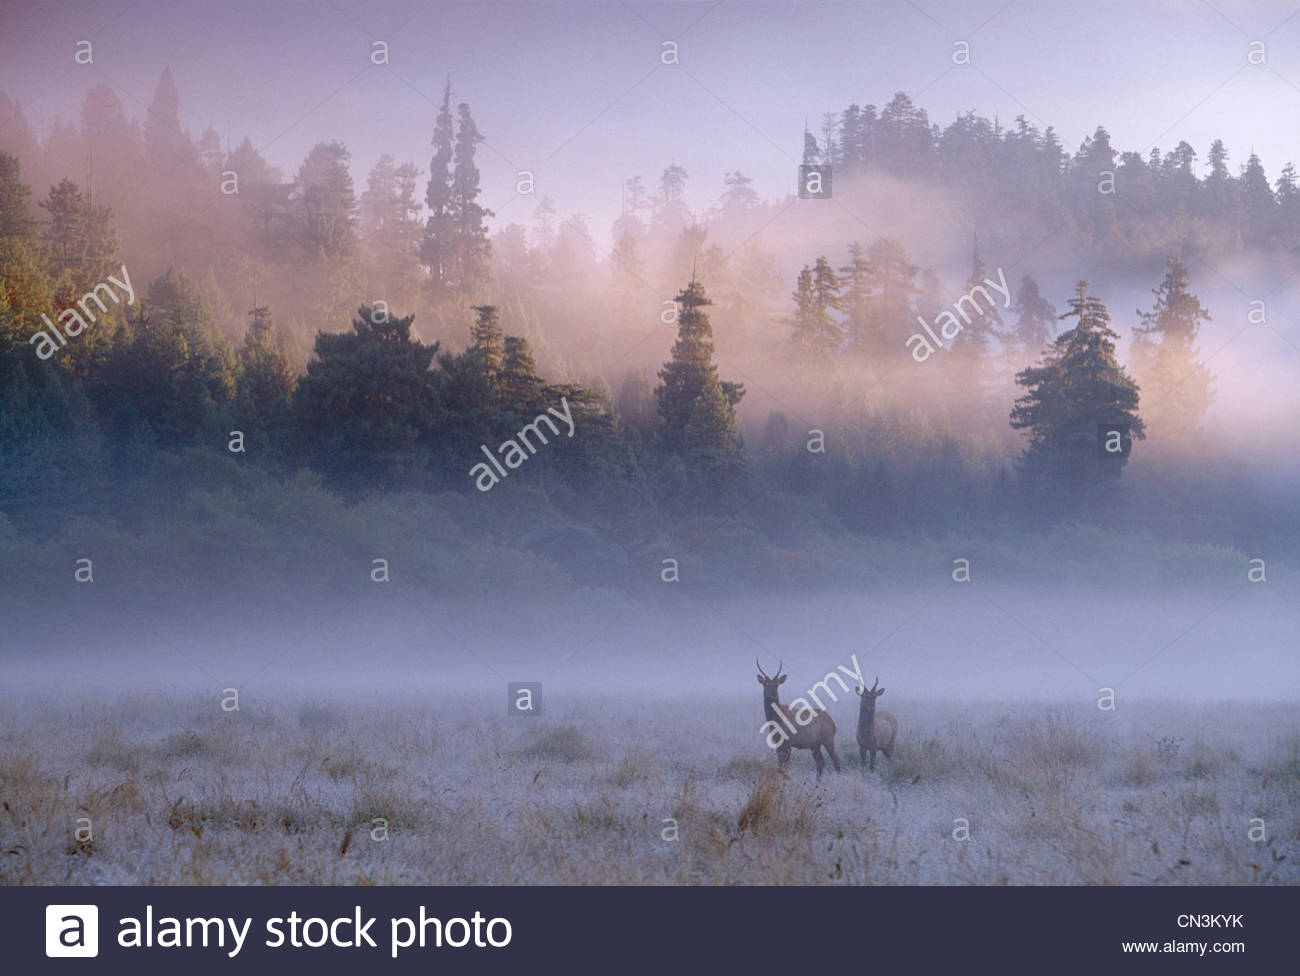 A pair of Roosevelt Elk bulls stand in a misty field in Redwoods National Park, California - Stock Image